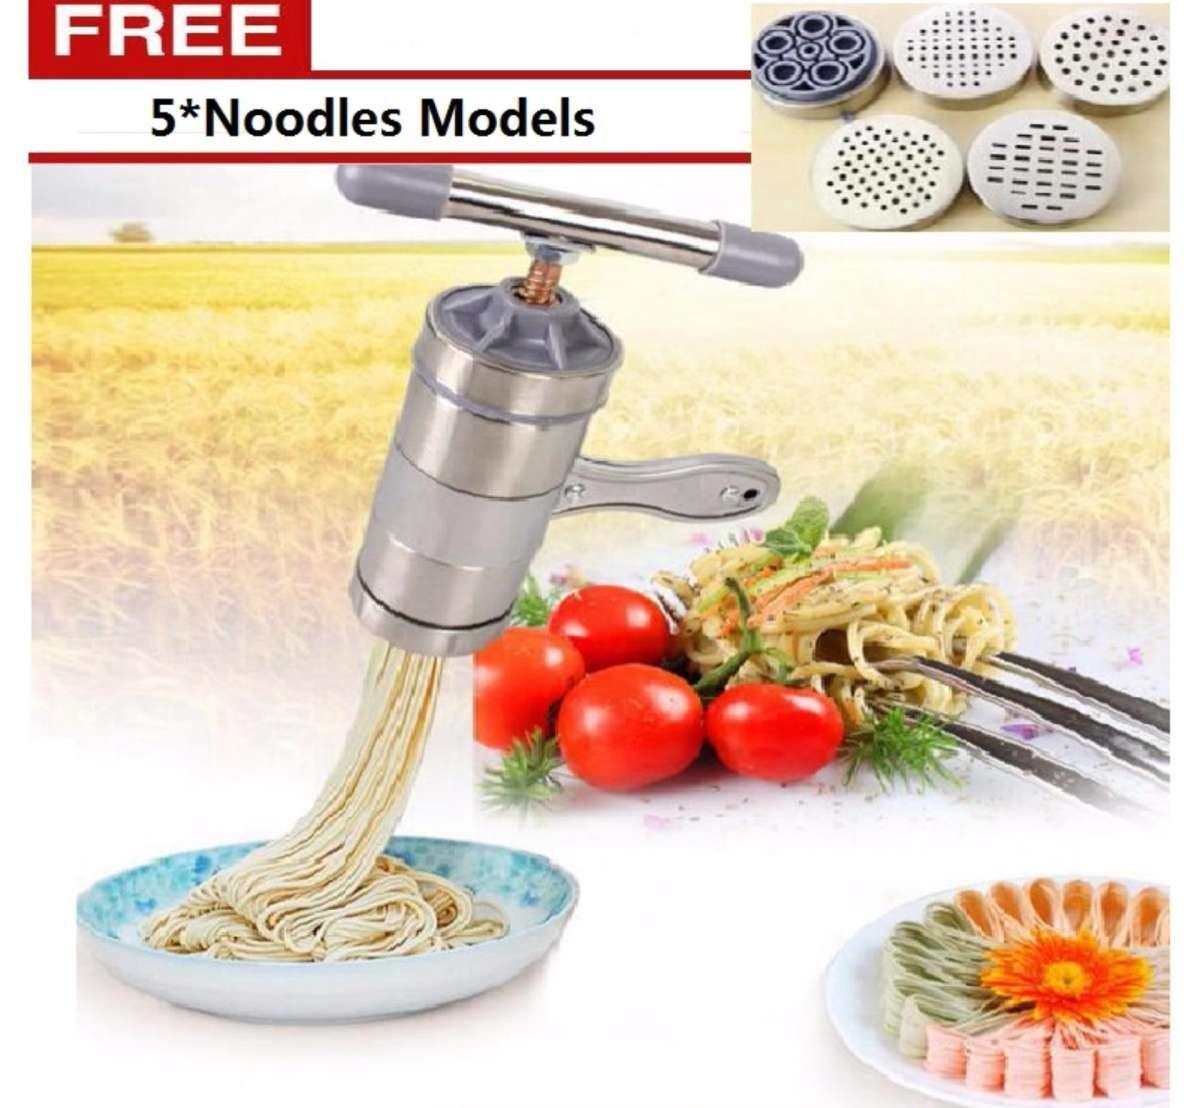 Noodle Pasta Maker Press Machine Homemade Household Stainless Steel Juicer By Sentexin.